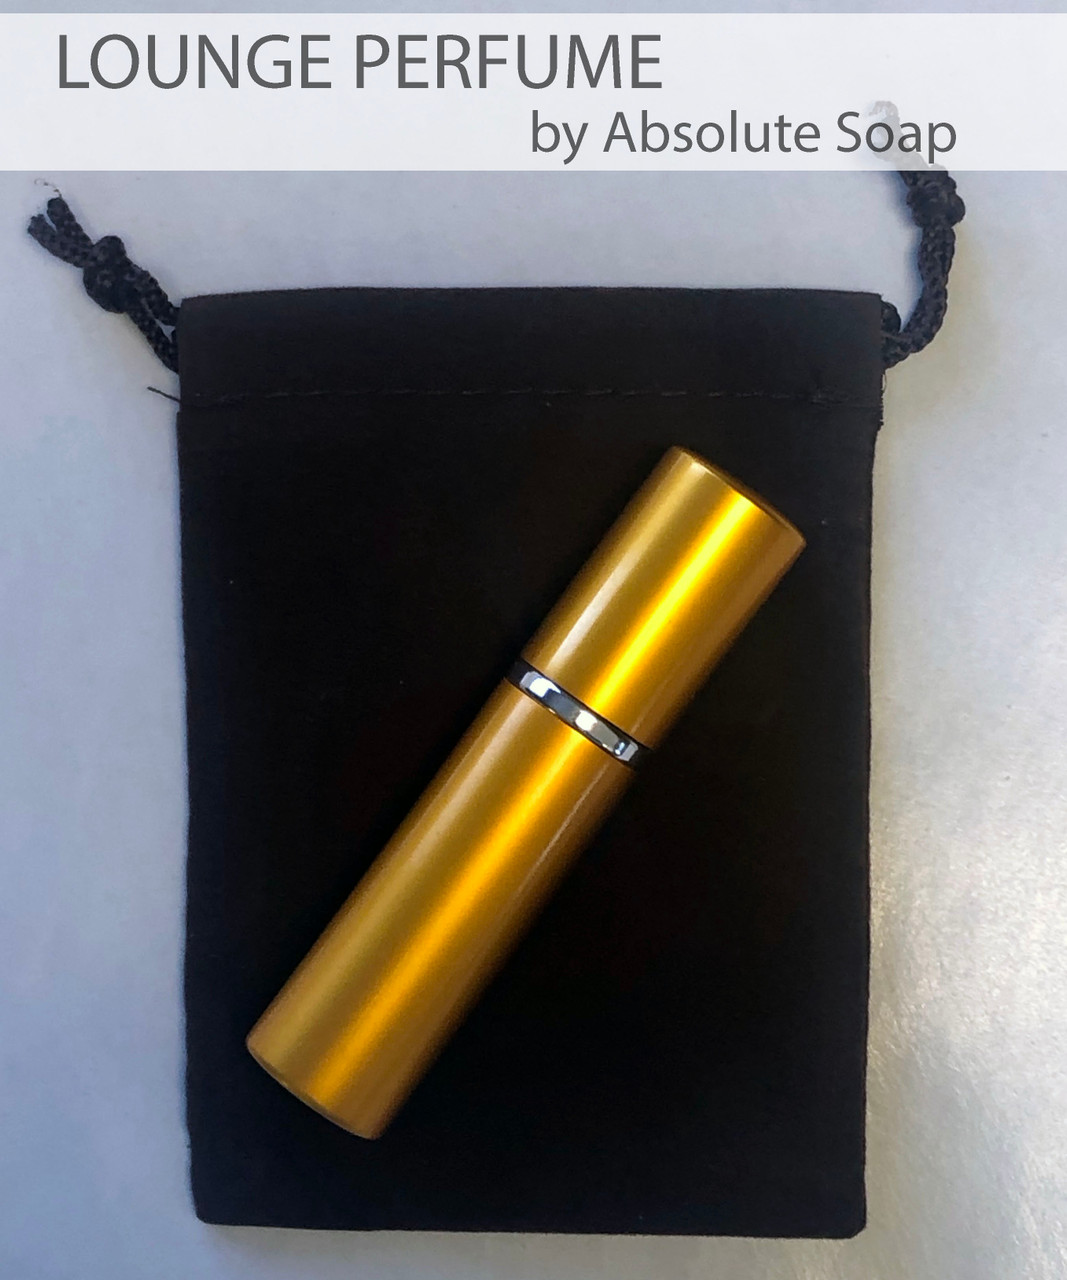 Lounge Hand-Blended Perfume | Absolute Soap